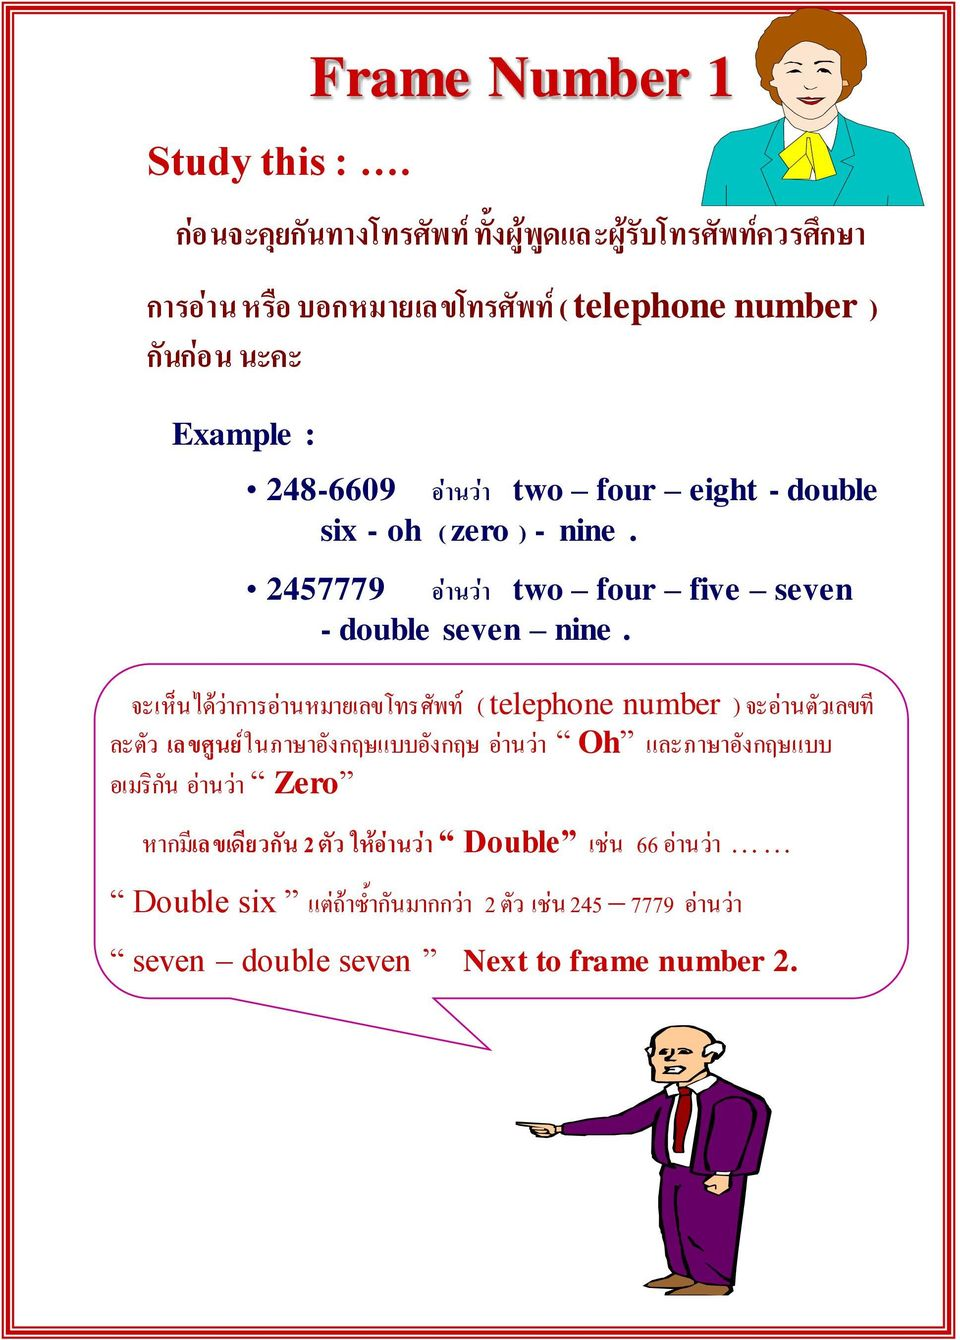 248-6609 อ านว า two four eight - double six - oh ( zero ) - nine. 2457779 อ านว า two four five seven - double seven nine.